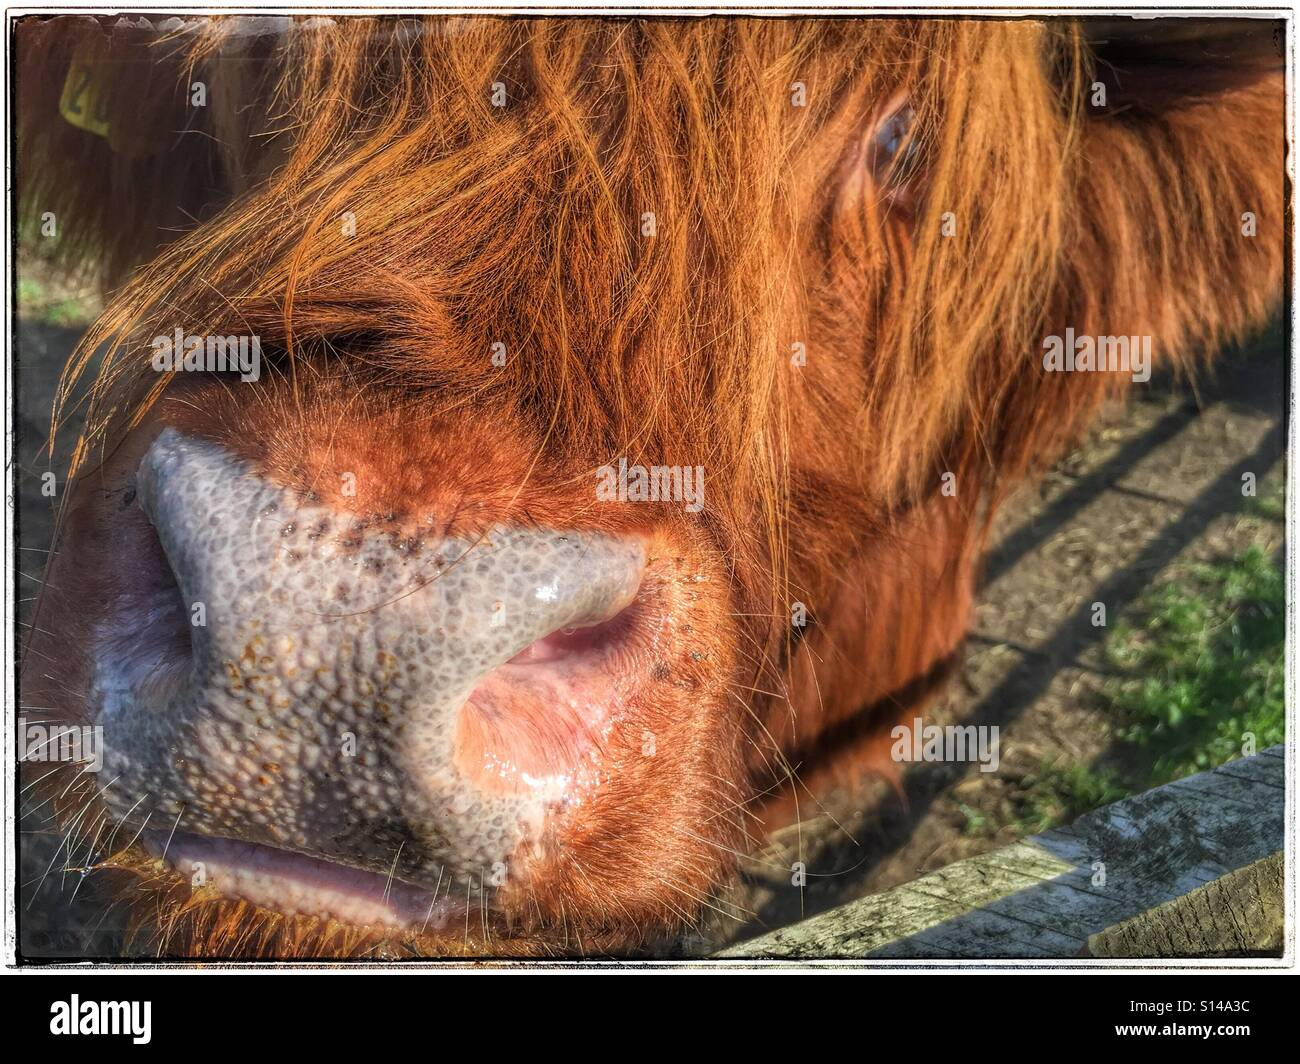 Close up of highland cattle face - Stock Image